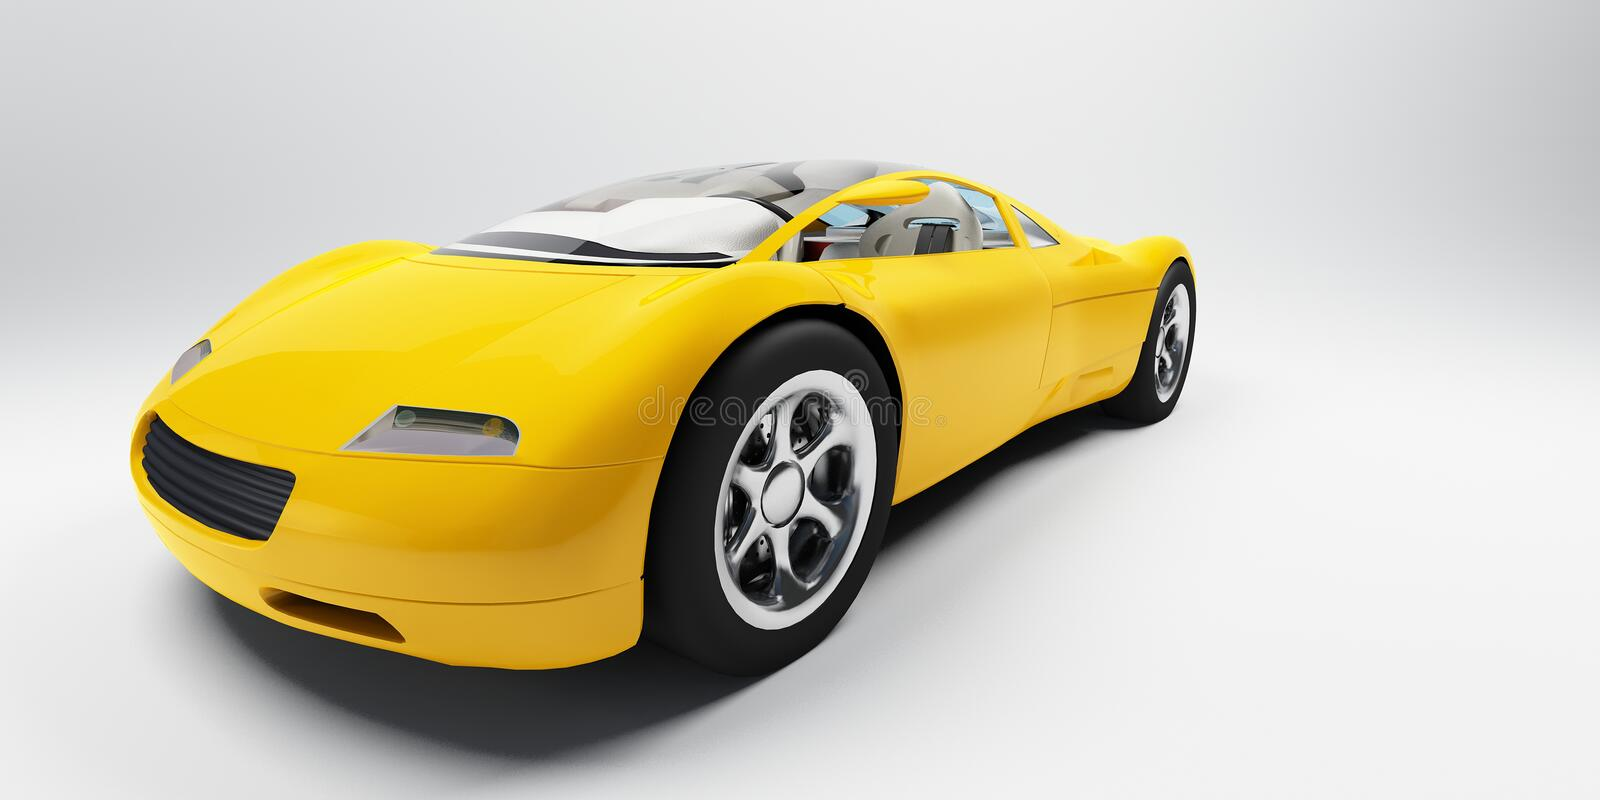 Sports car. Yellow sports car frontal view on a neutral background stock illustration